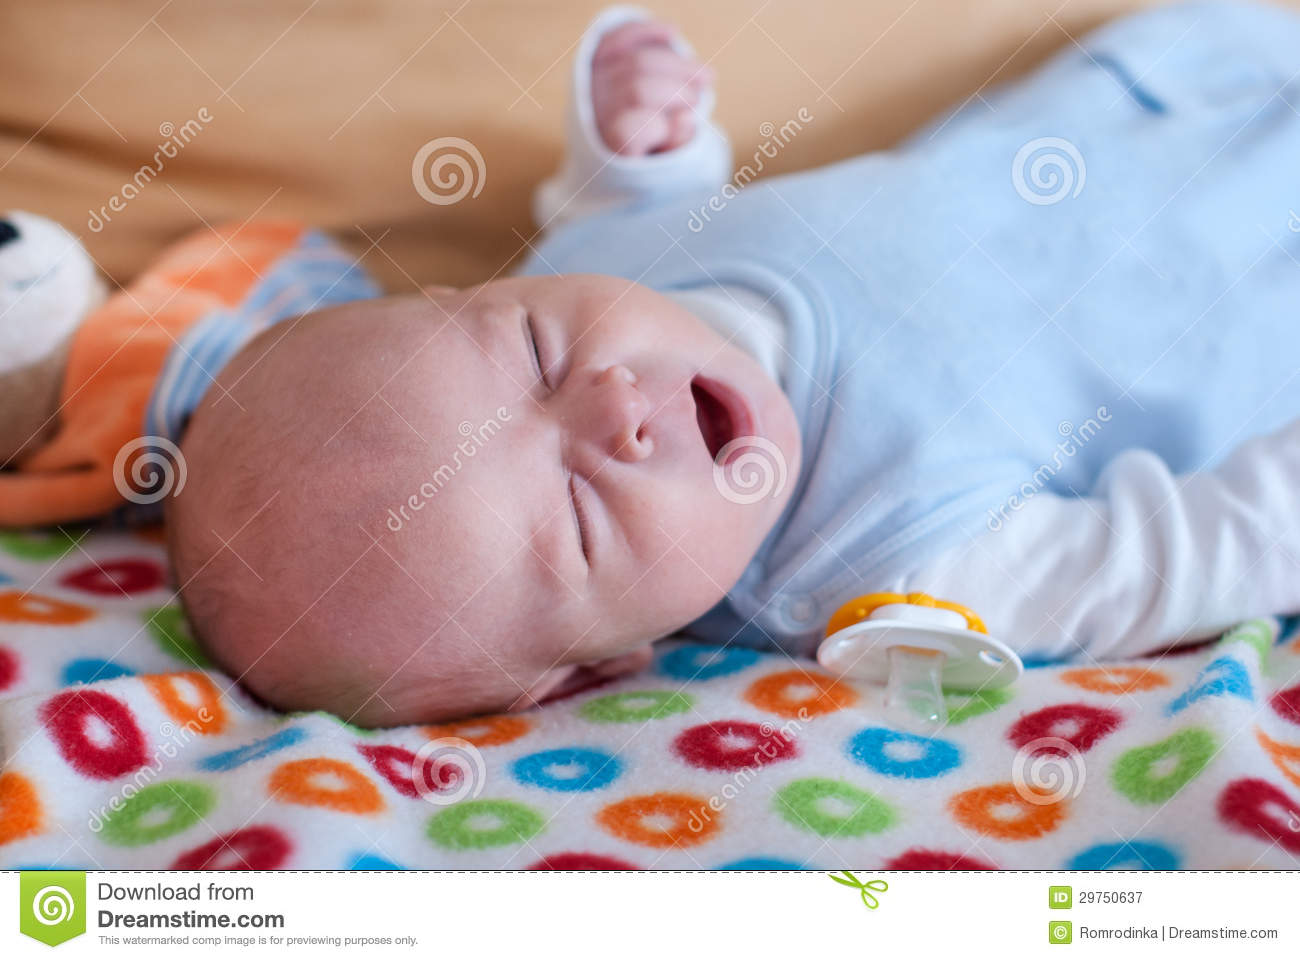 Adorable Baby Boy With Blue Eyes Stock Image - Image of ...